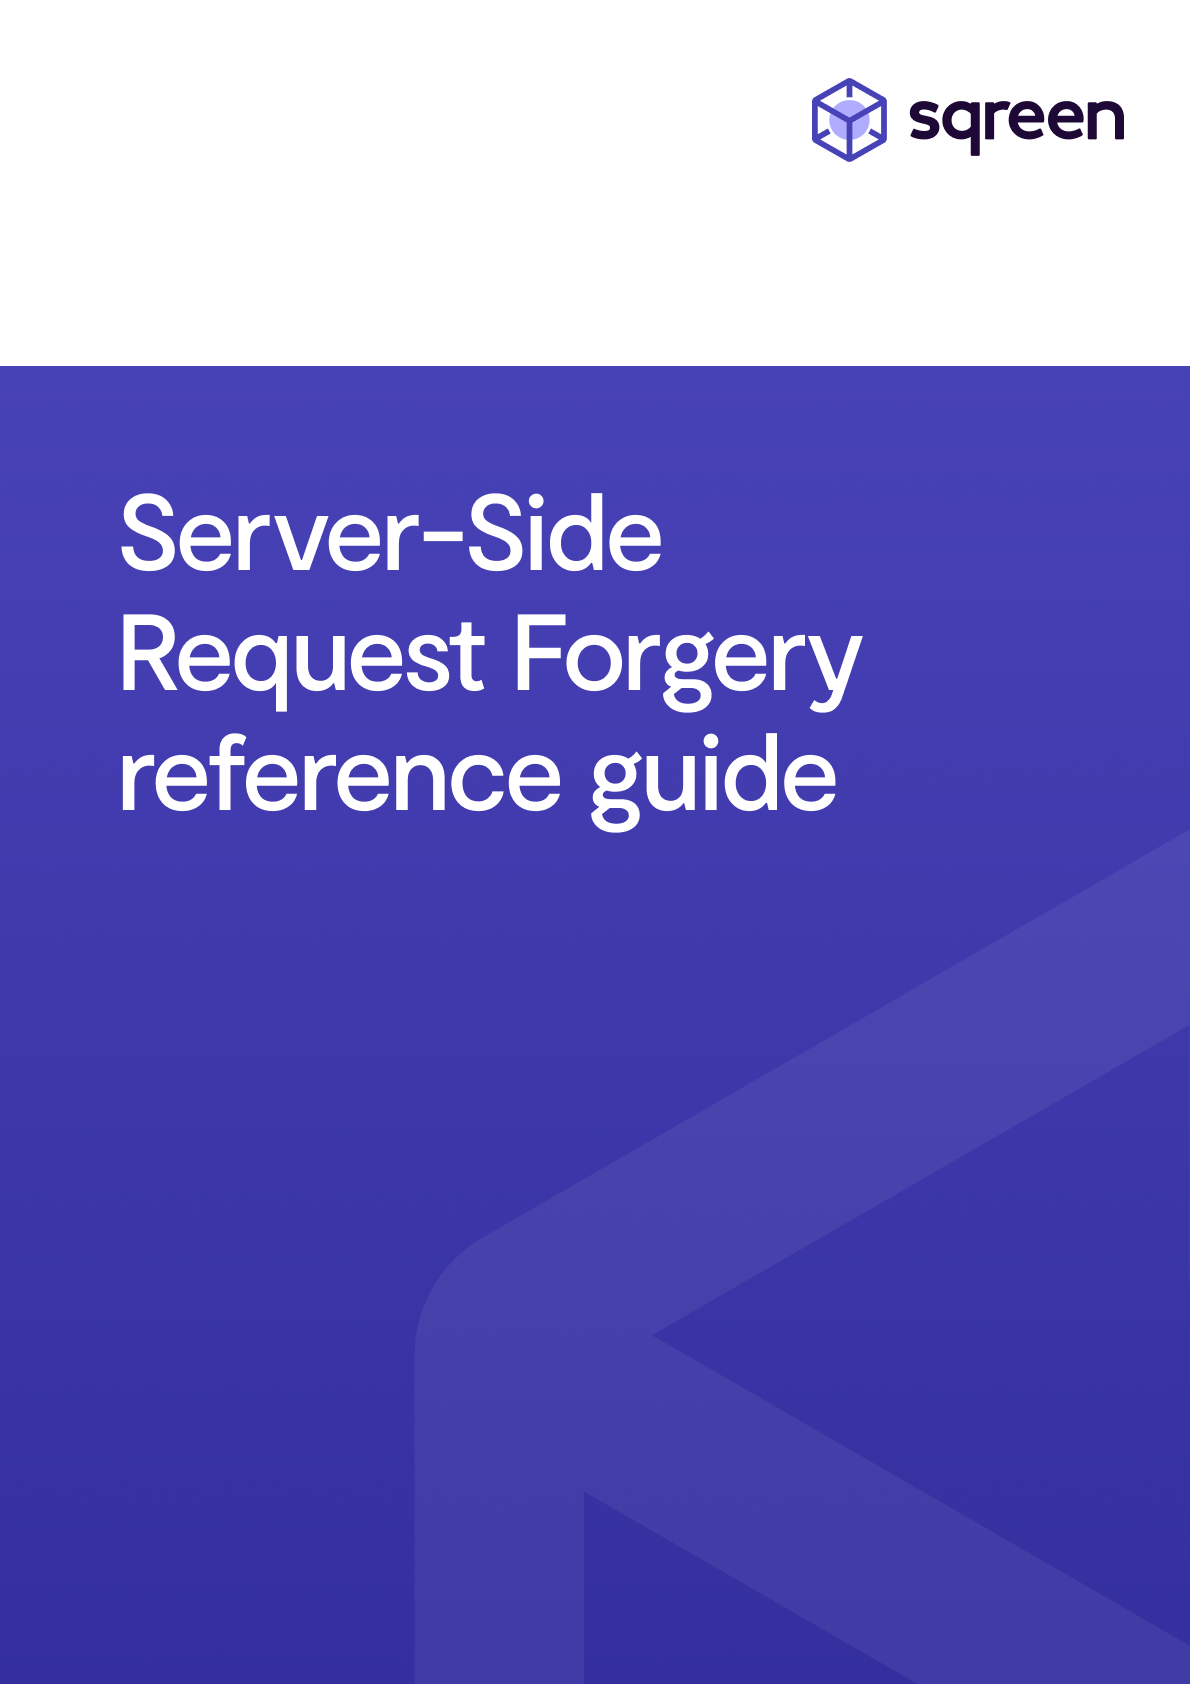 Server-Side Request Forgery reference guide